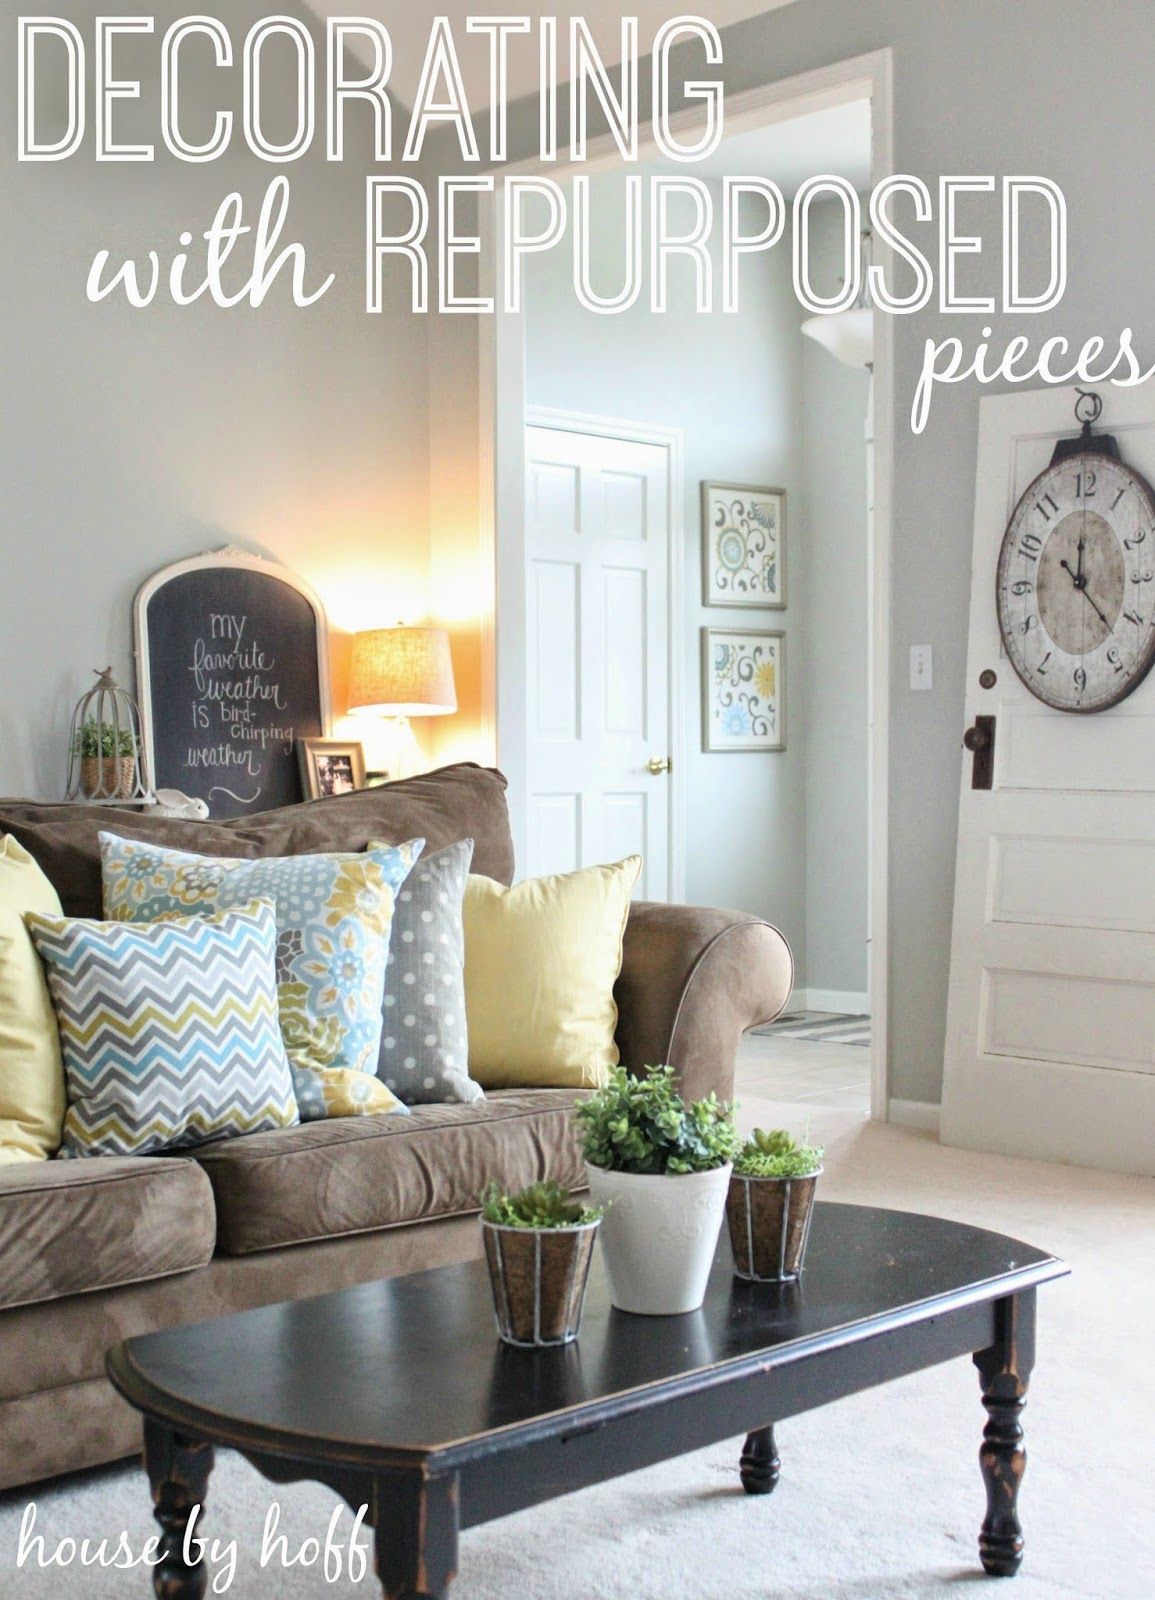 Decorating with repurposed pieces house by hoff for Repurposed home decorating ideas